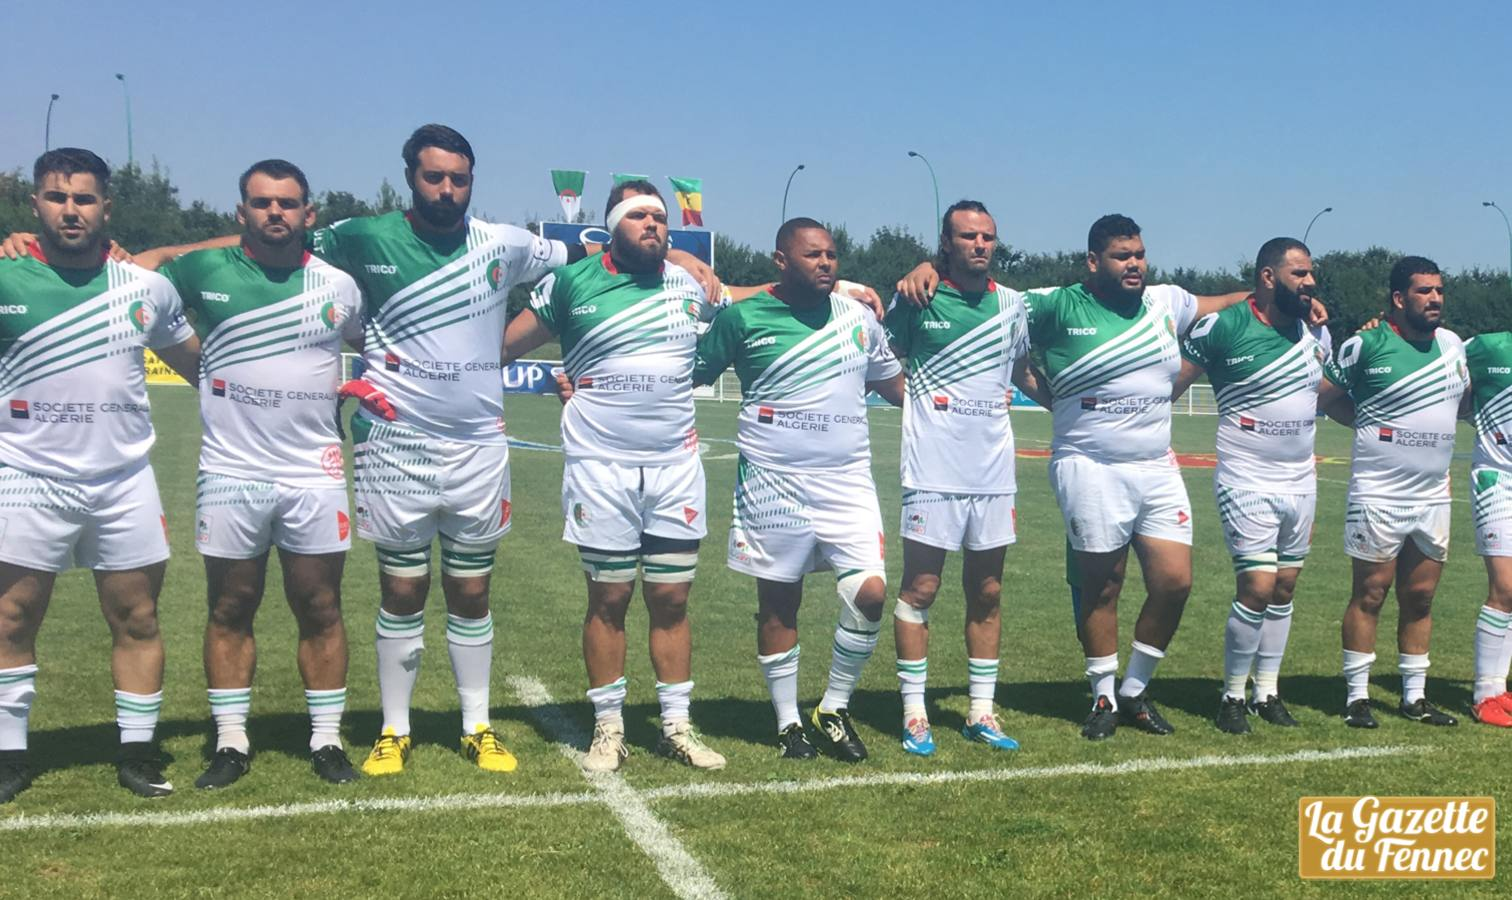 hymne algerie senegal rugby toulouse